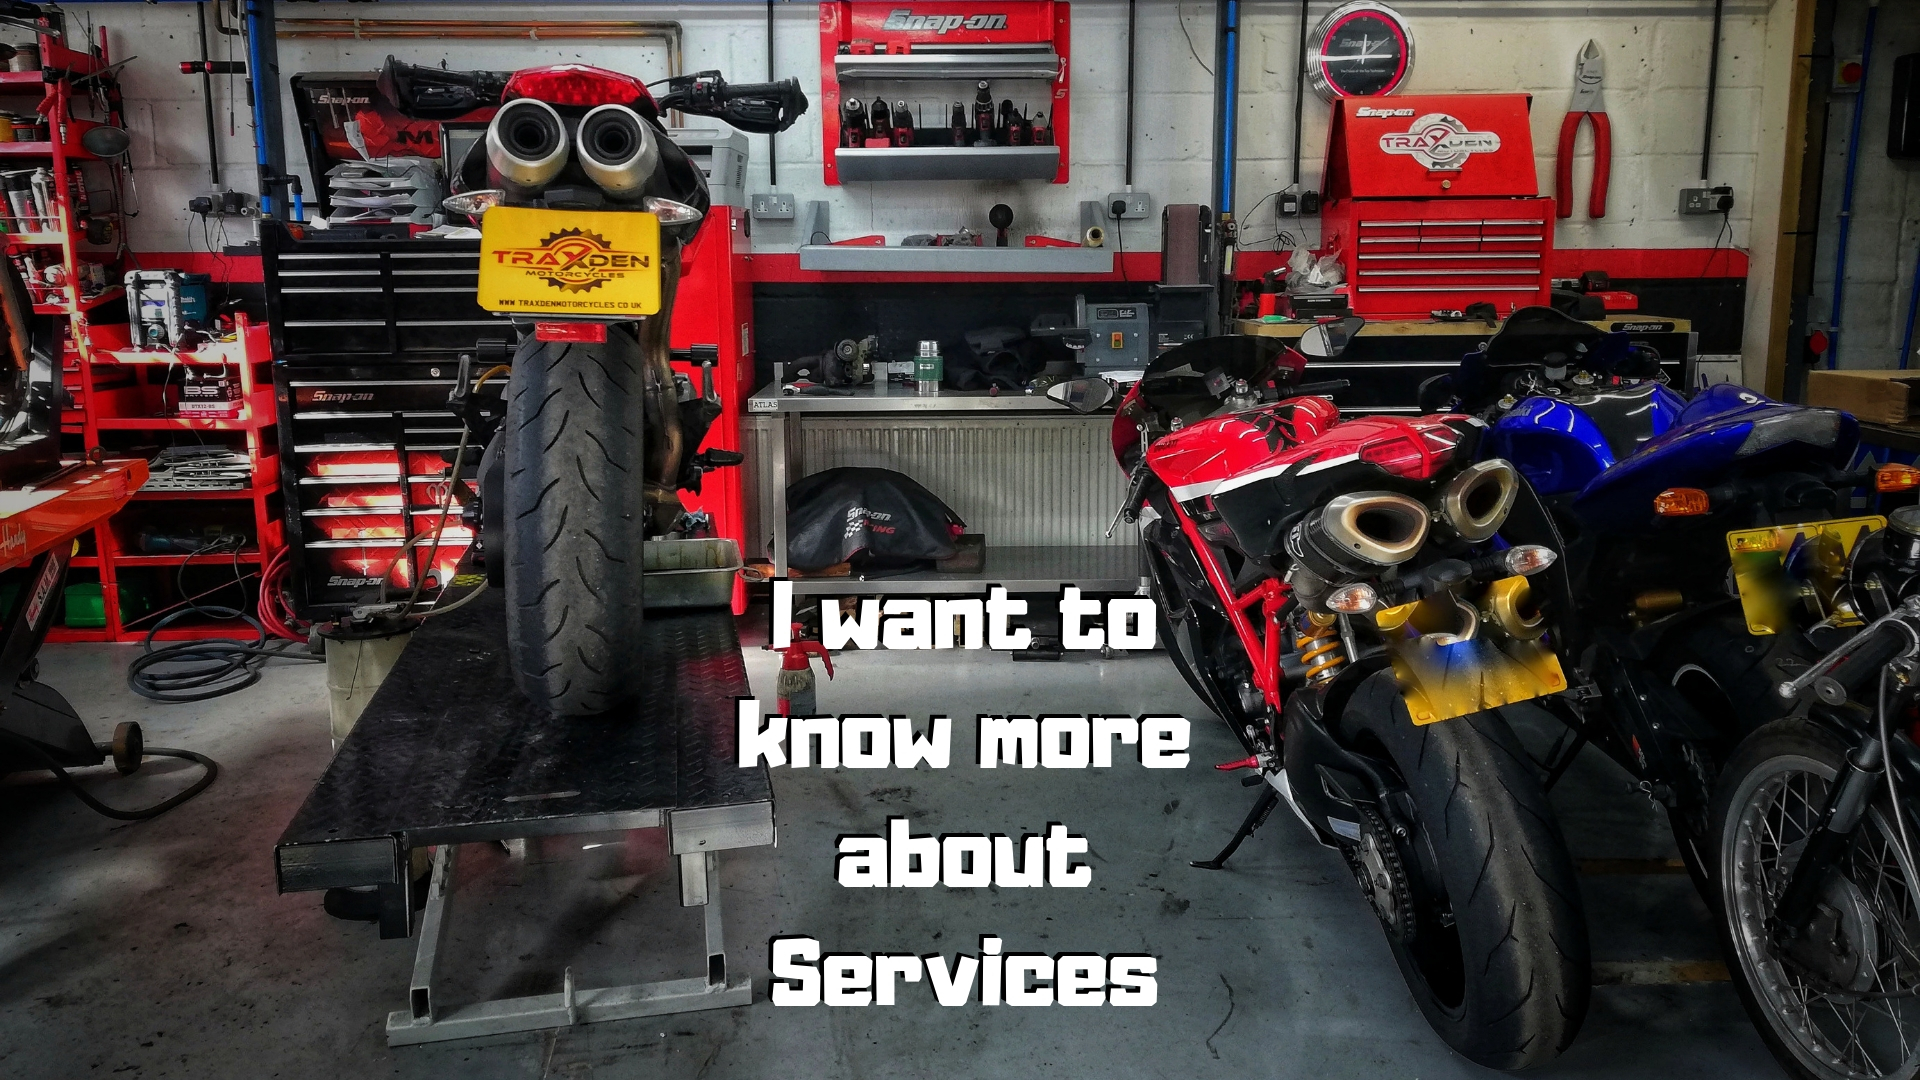 engineering services for motorcycles scooters